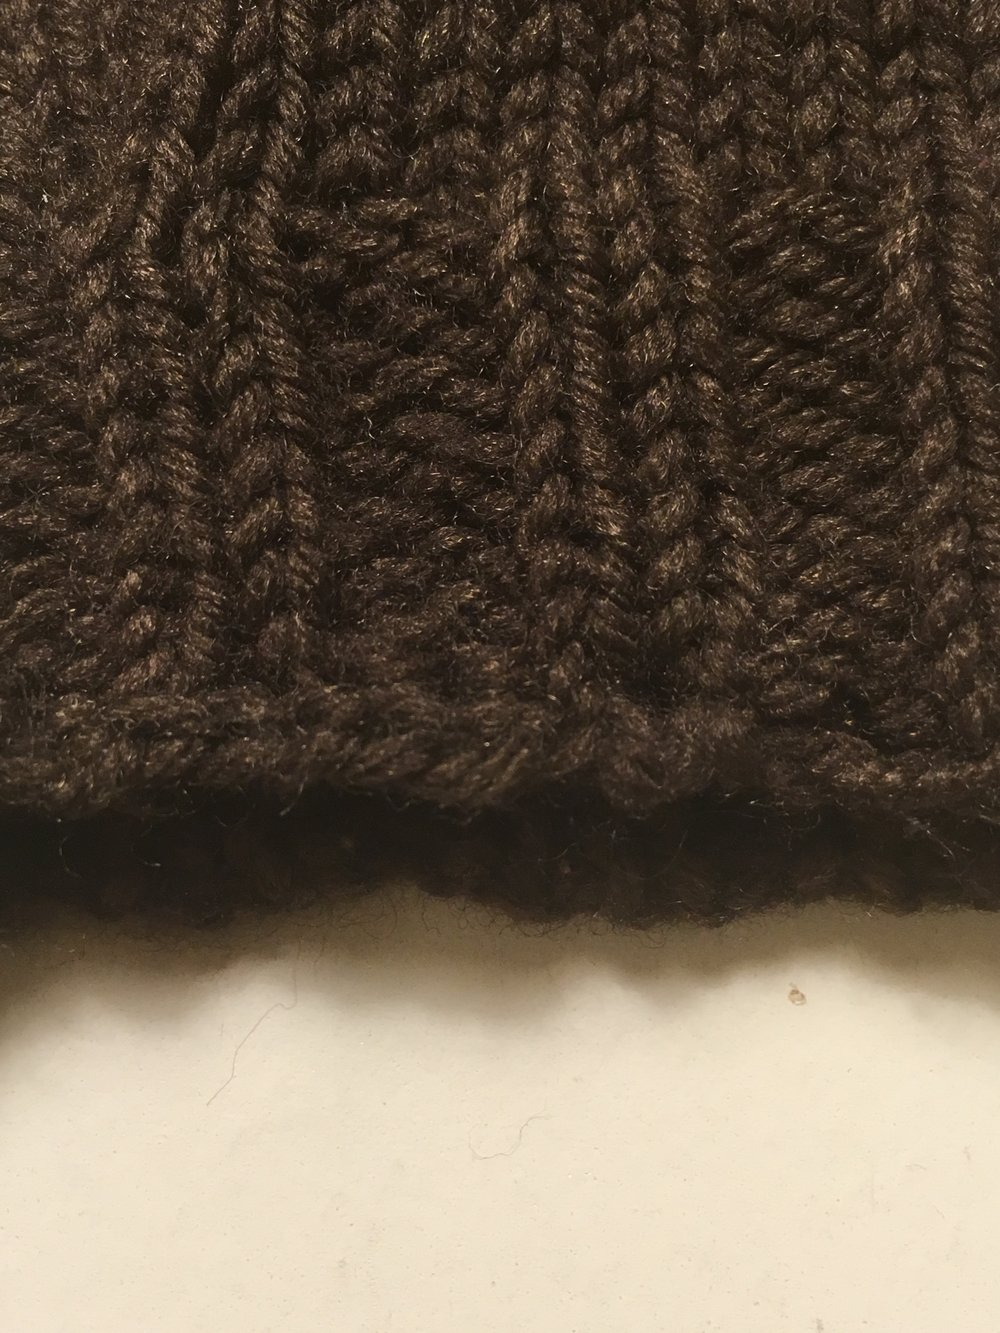 I single crocheted across the gap and added some vertical bars to mimic the original tubular bindoff. Some places it was more convincing that others.